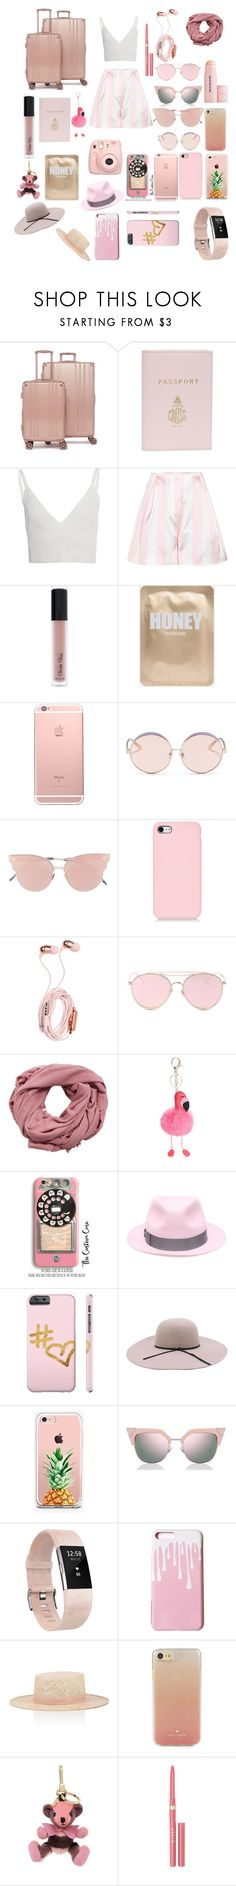 """Pink Voyage"" by cananelets ❤ liked on Polyvore featuring CalPak, Mark Cross, Zeynep Arçay, Edit, Violet Voss, N°21, So.Ya, LMNT, MANGO and Samsung"